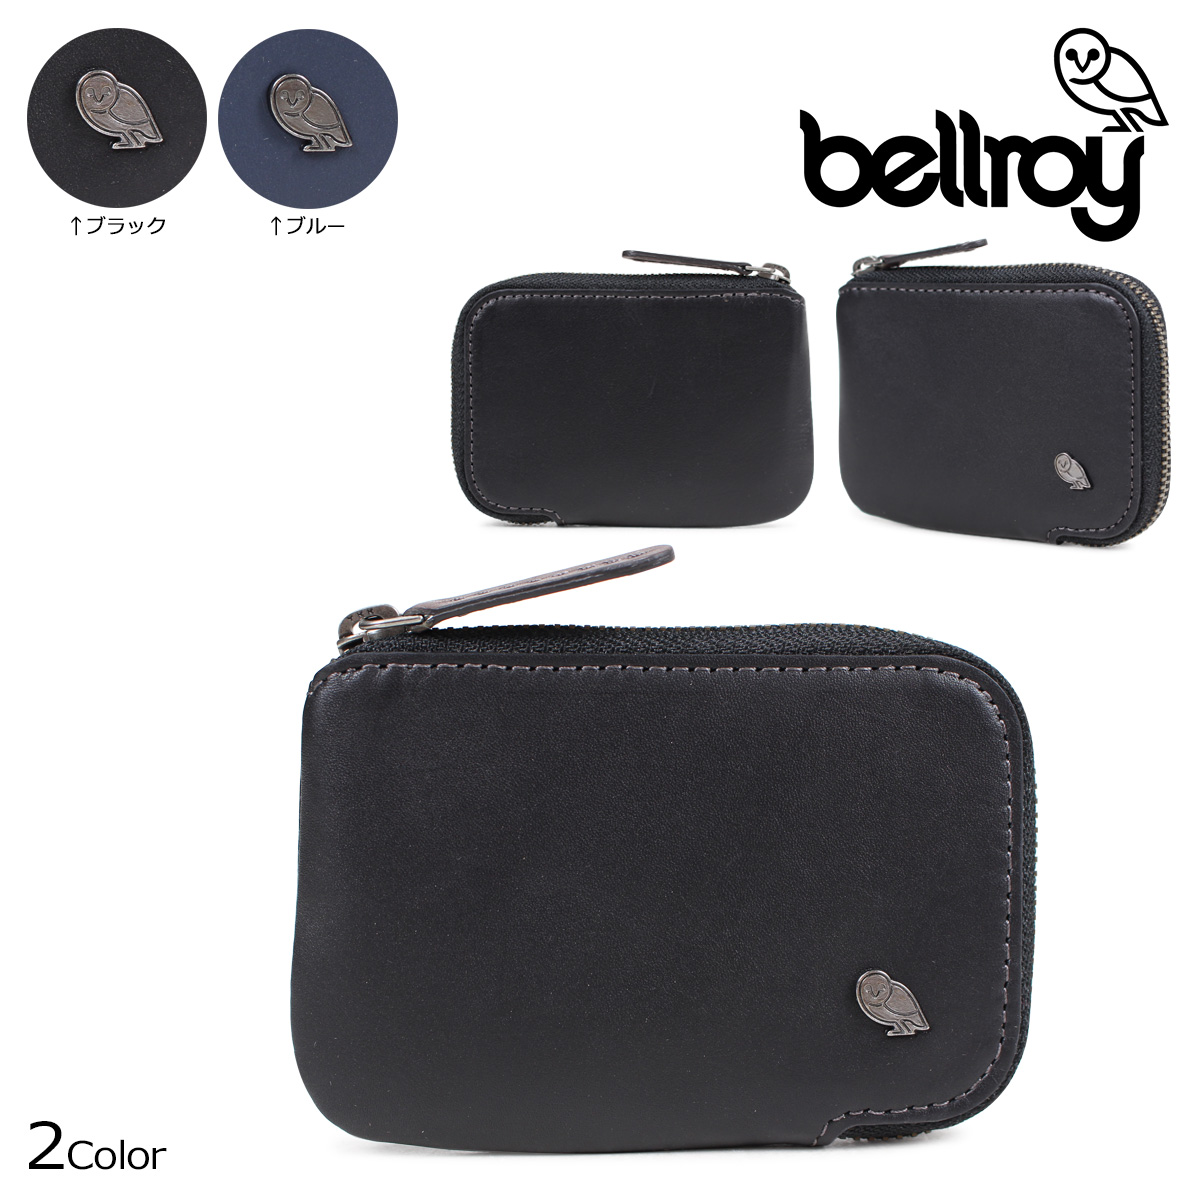 5b1e25d56b801 Bell Roy Bellroy wallet men gap Dis coin purse CARD POCKET black blue WCPA  [5/1 Shinnyu load]